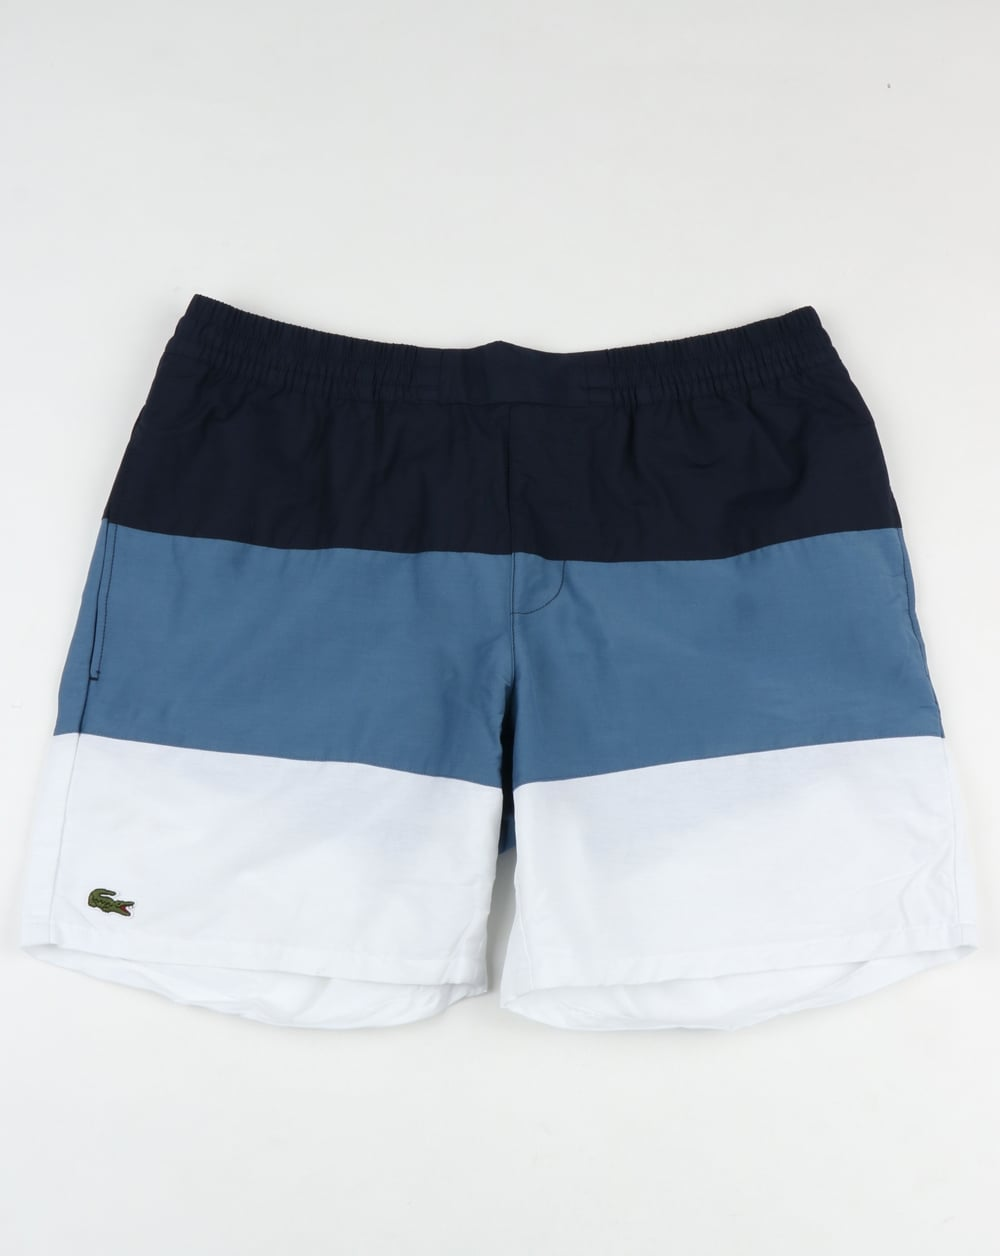 317a61557d Lacoste Block Stripe Swim Shorts Navy/Blue/White,beach,swimmers,mens